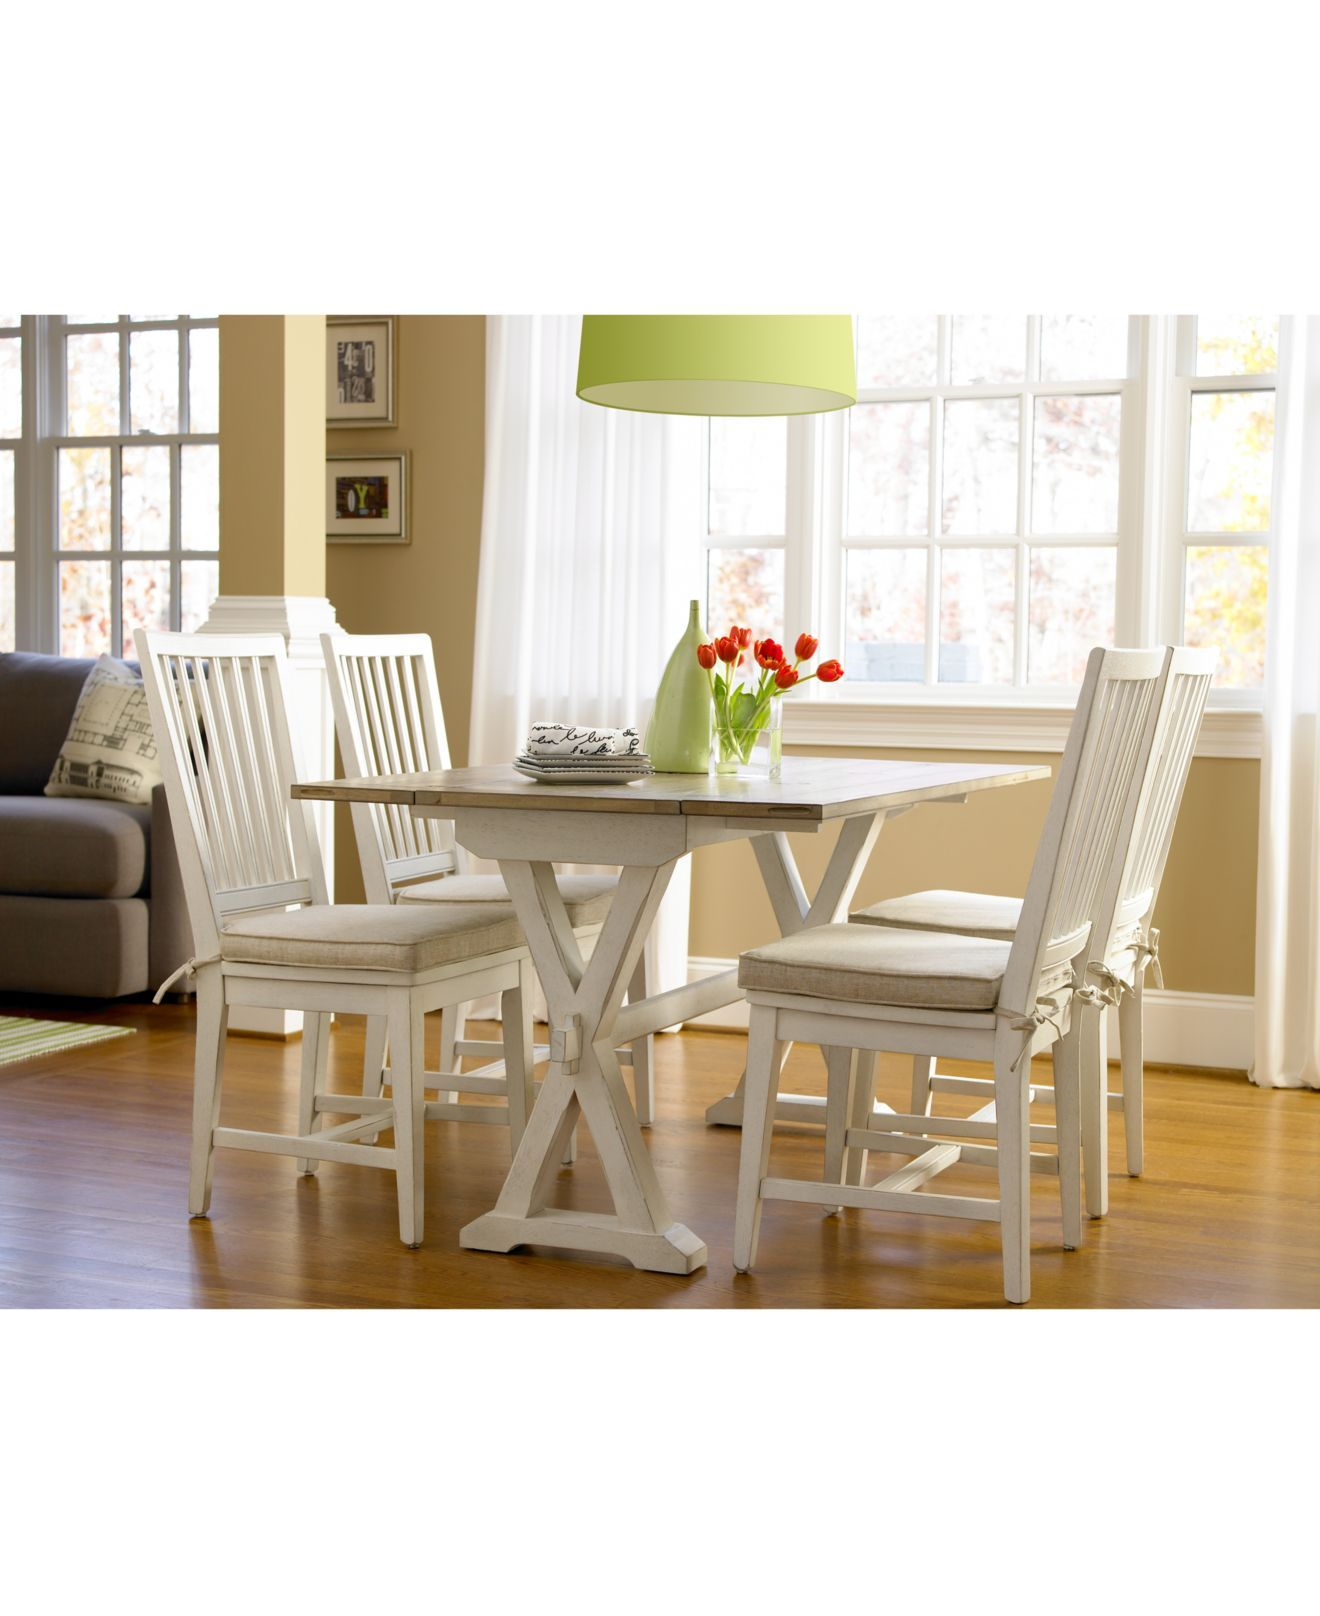 Light Airy and Rustic Casual Dining room Dining room